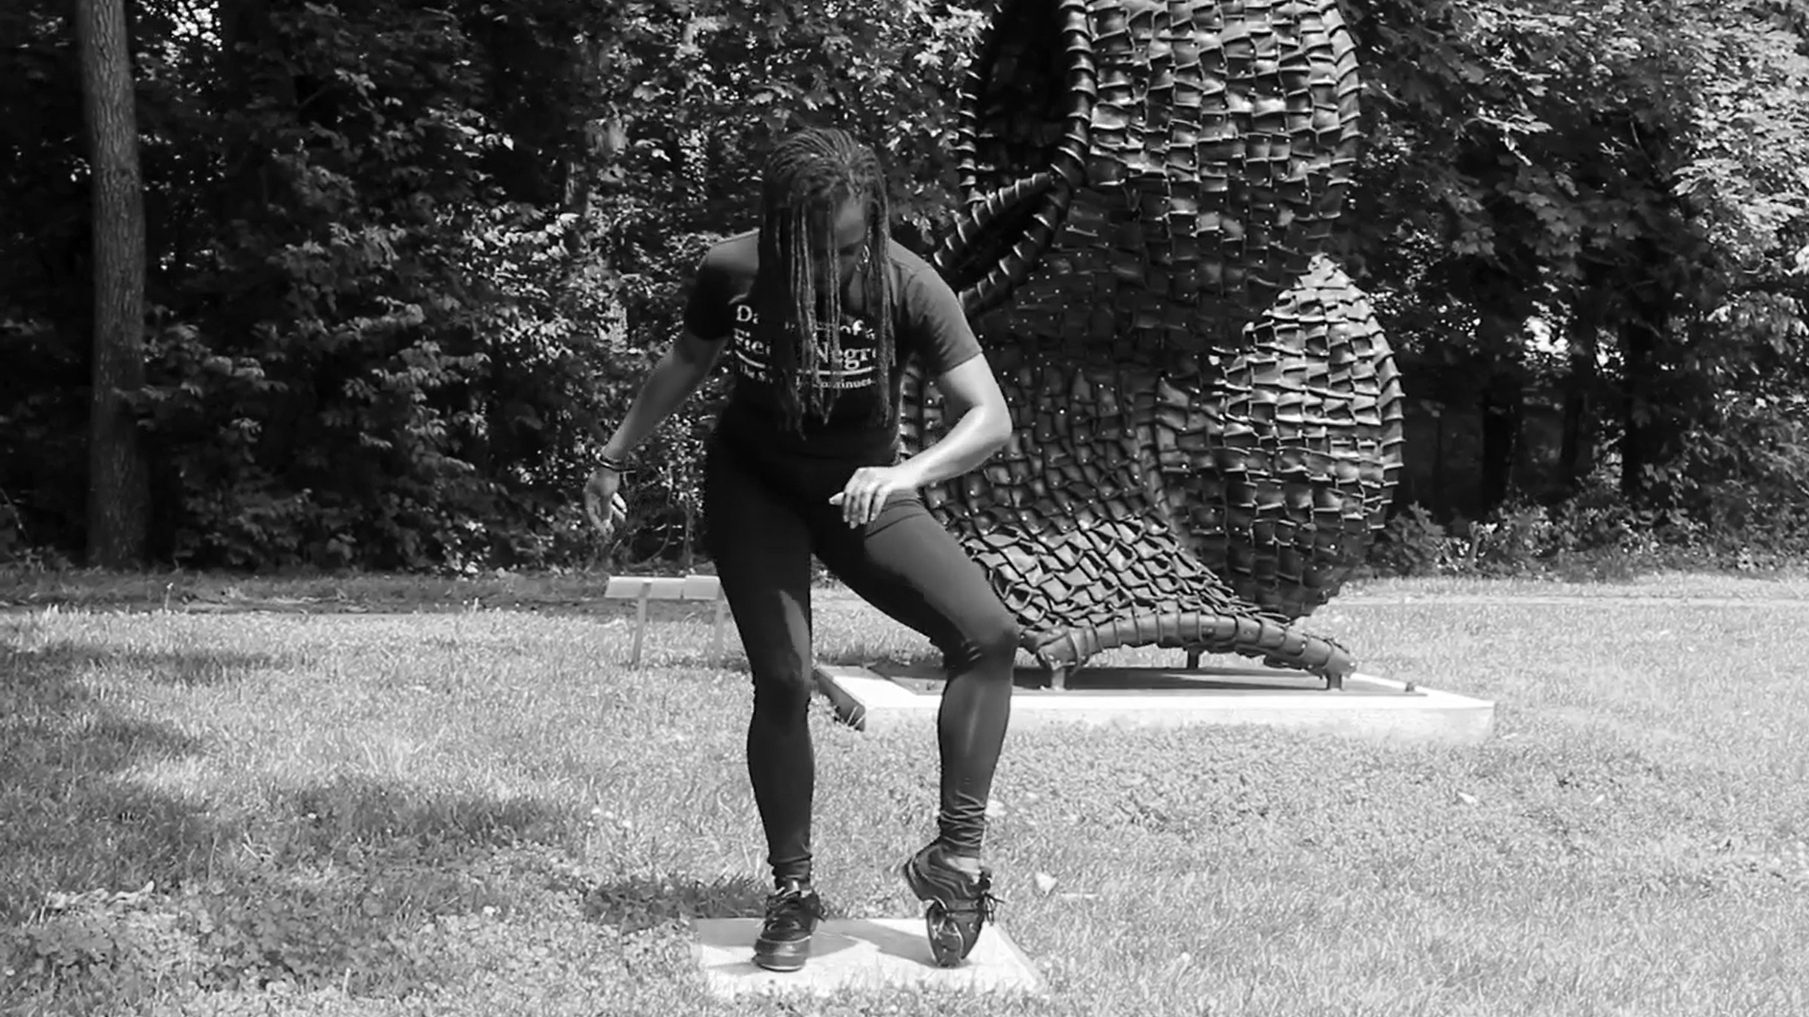 A person bent over in a dance move in front of a black undulating sculpture in an outdoor setting